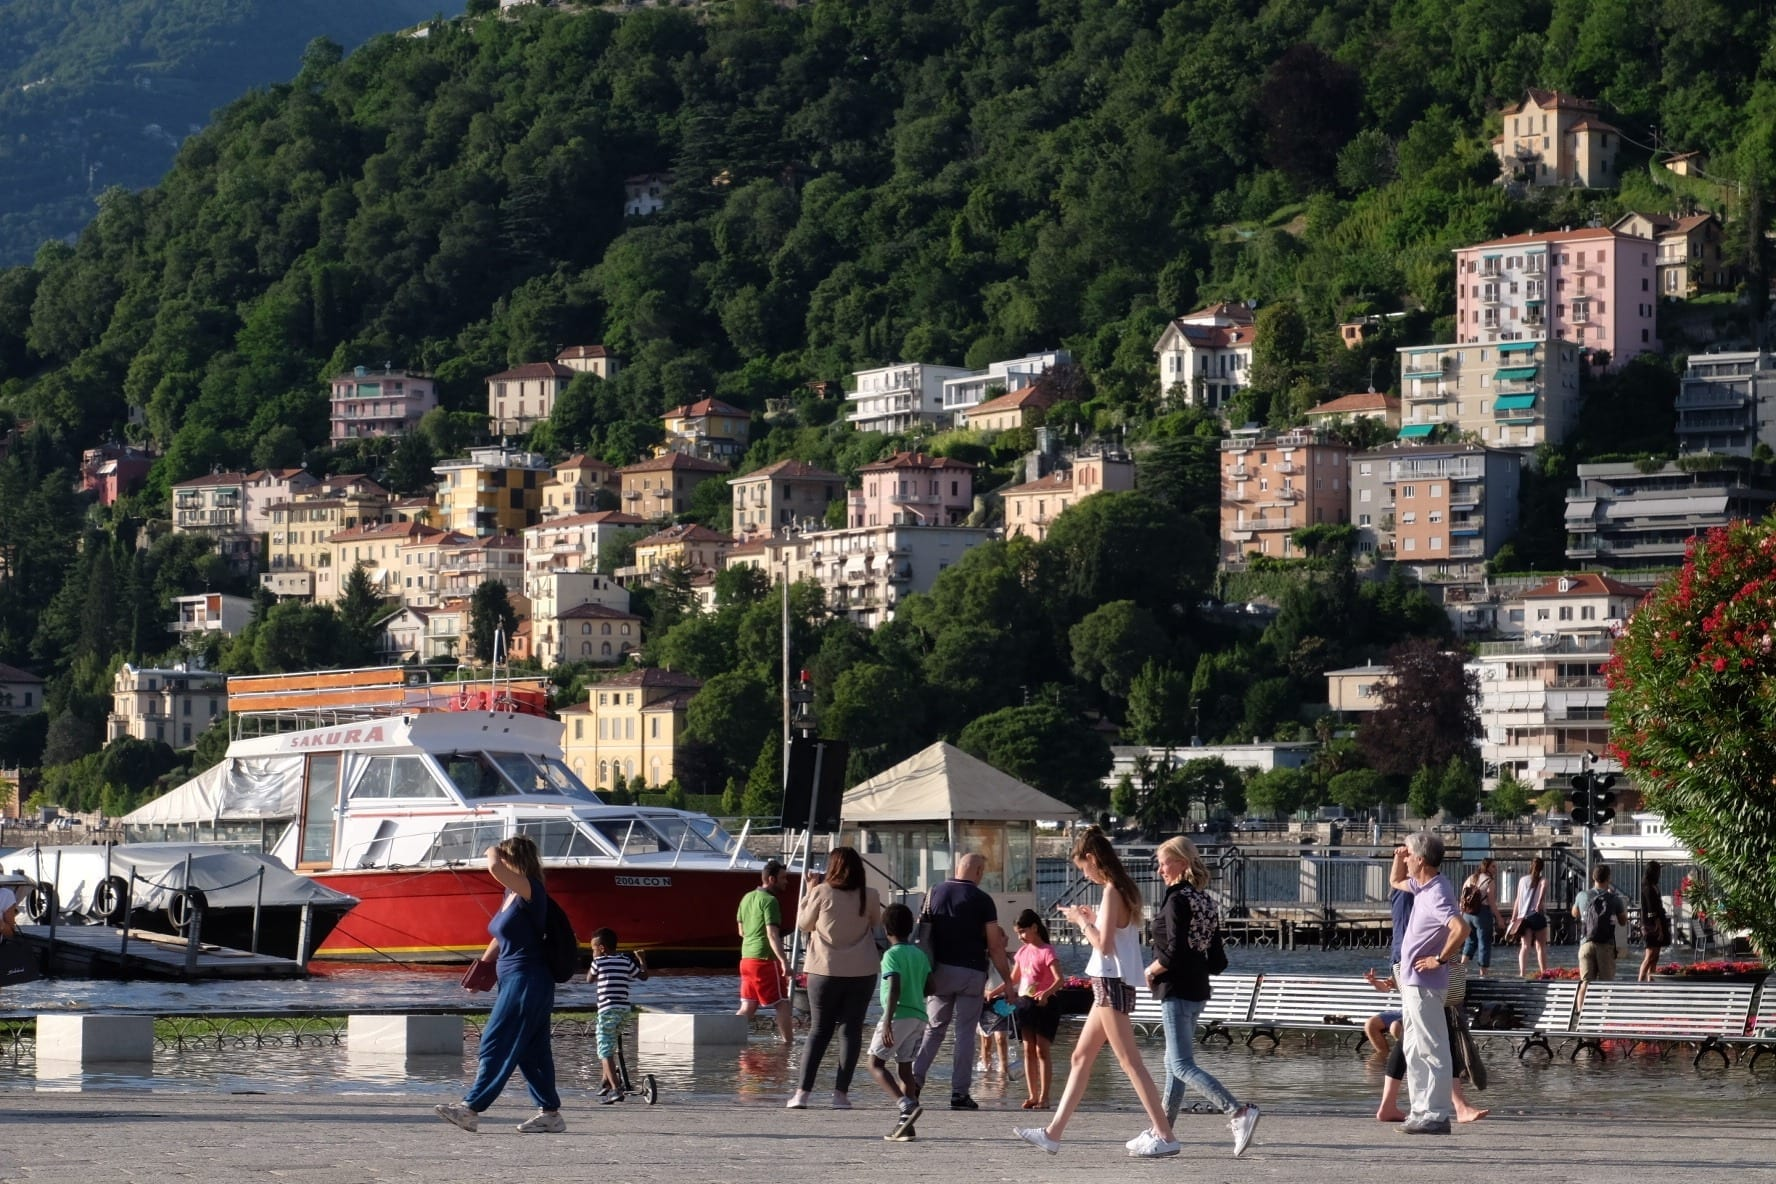 Several people walk across a piazza in Como, Italy. In the background is the lake and several houses built on a green mountainside leading into the lake.